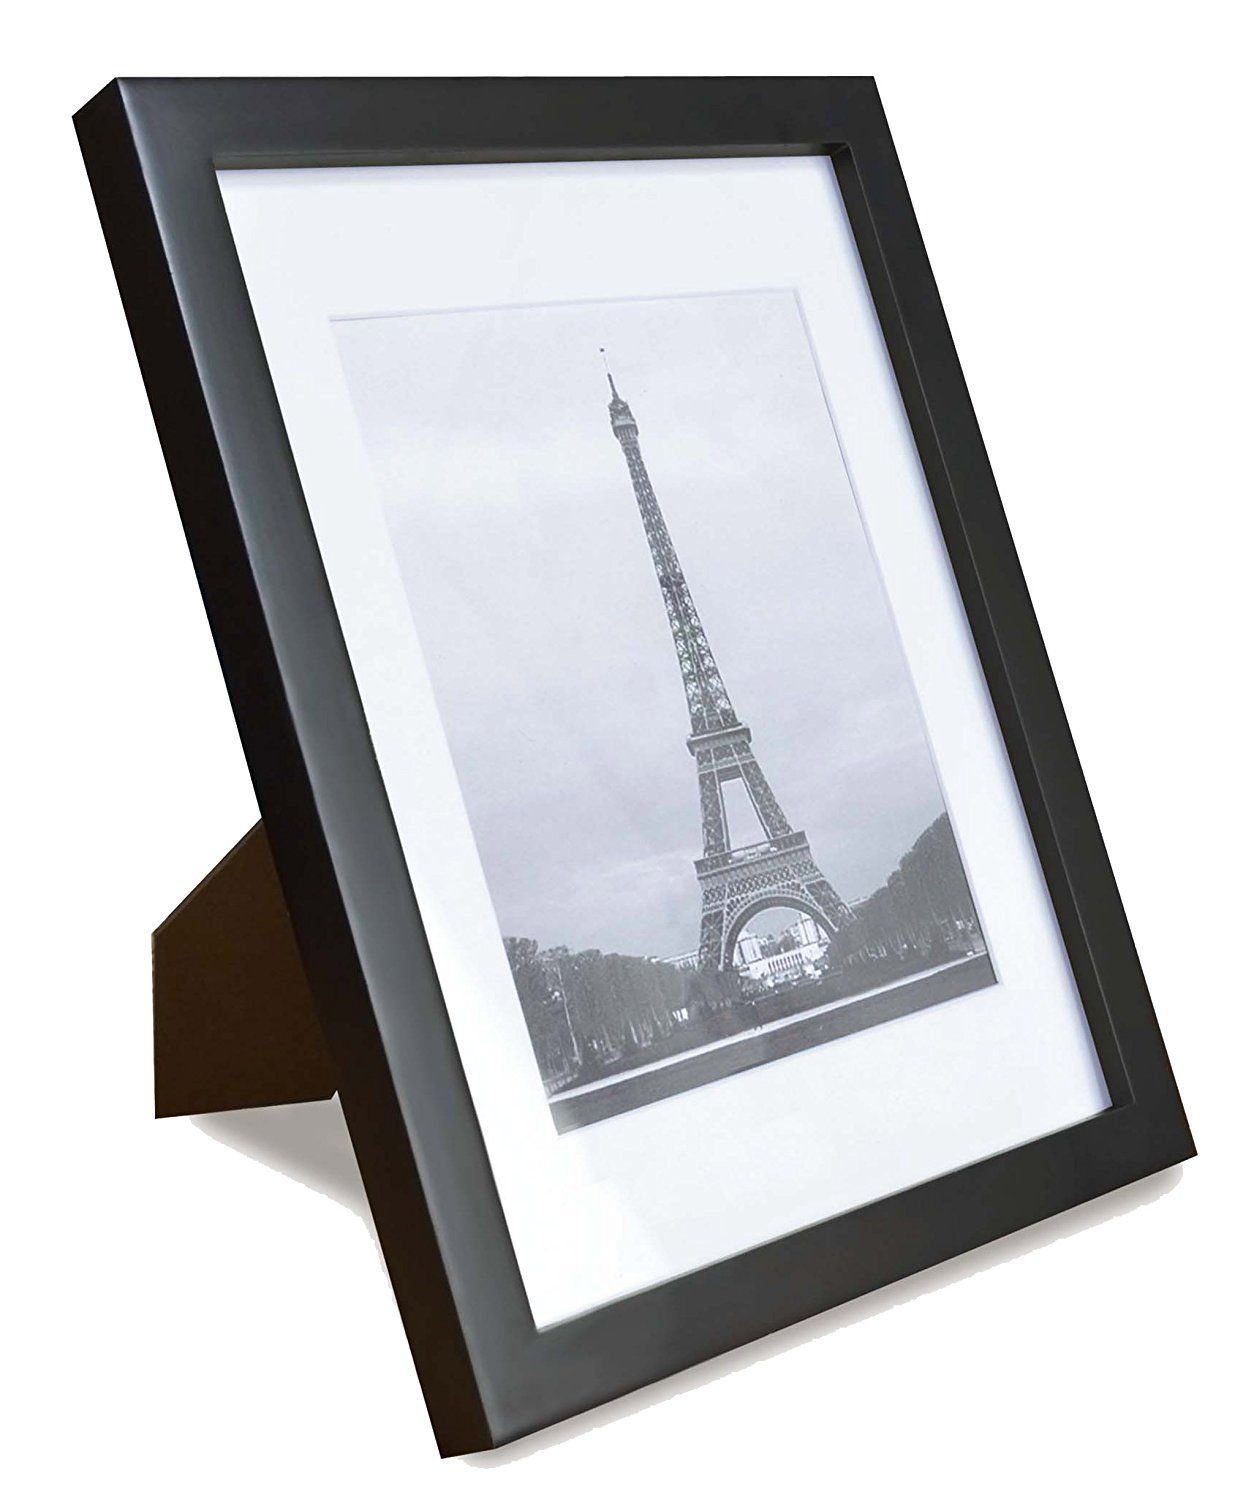 Solid Wood A3 Frame Glass Front With Picture Mat For A4 Photo Frame Width 2 Cm Black Click Image For More Details T Frame Picture Frames Wood Glass